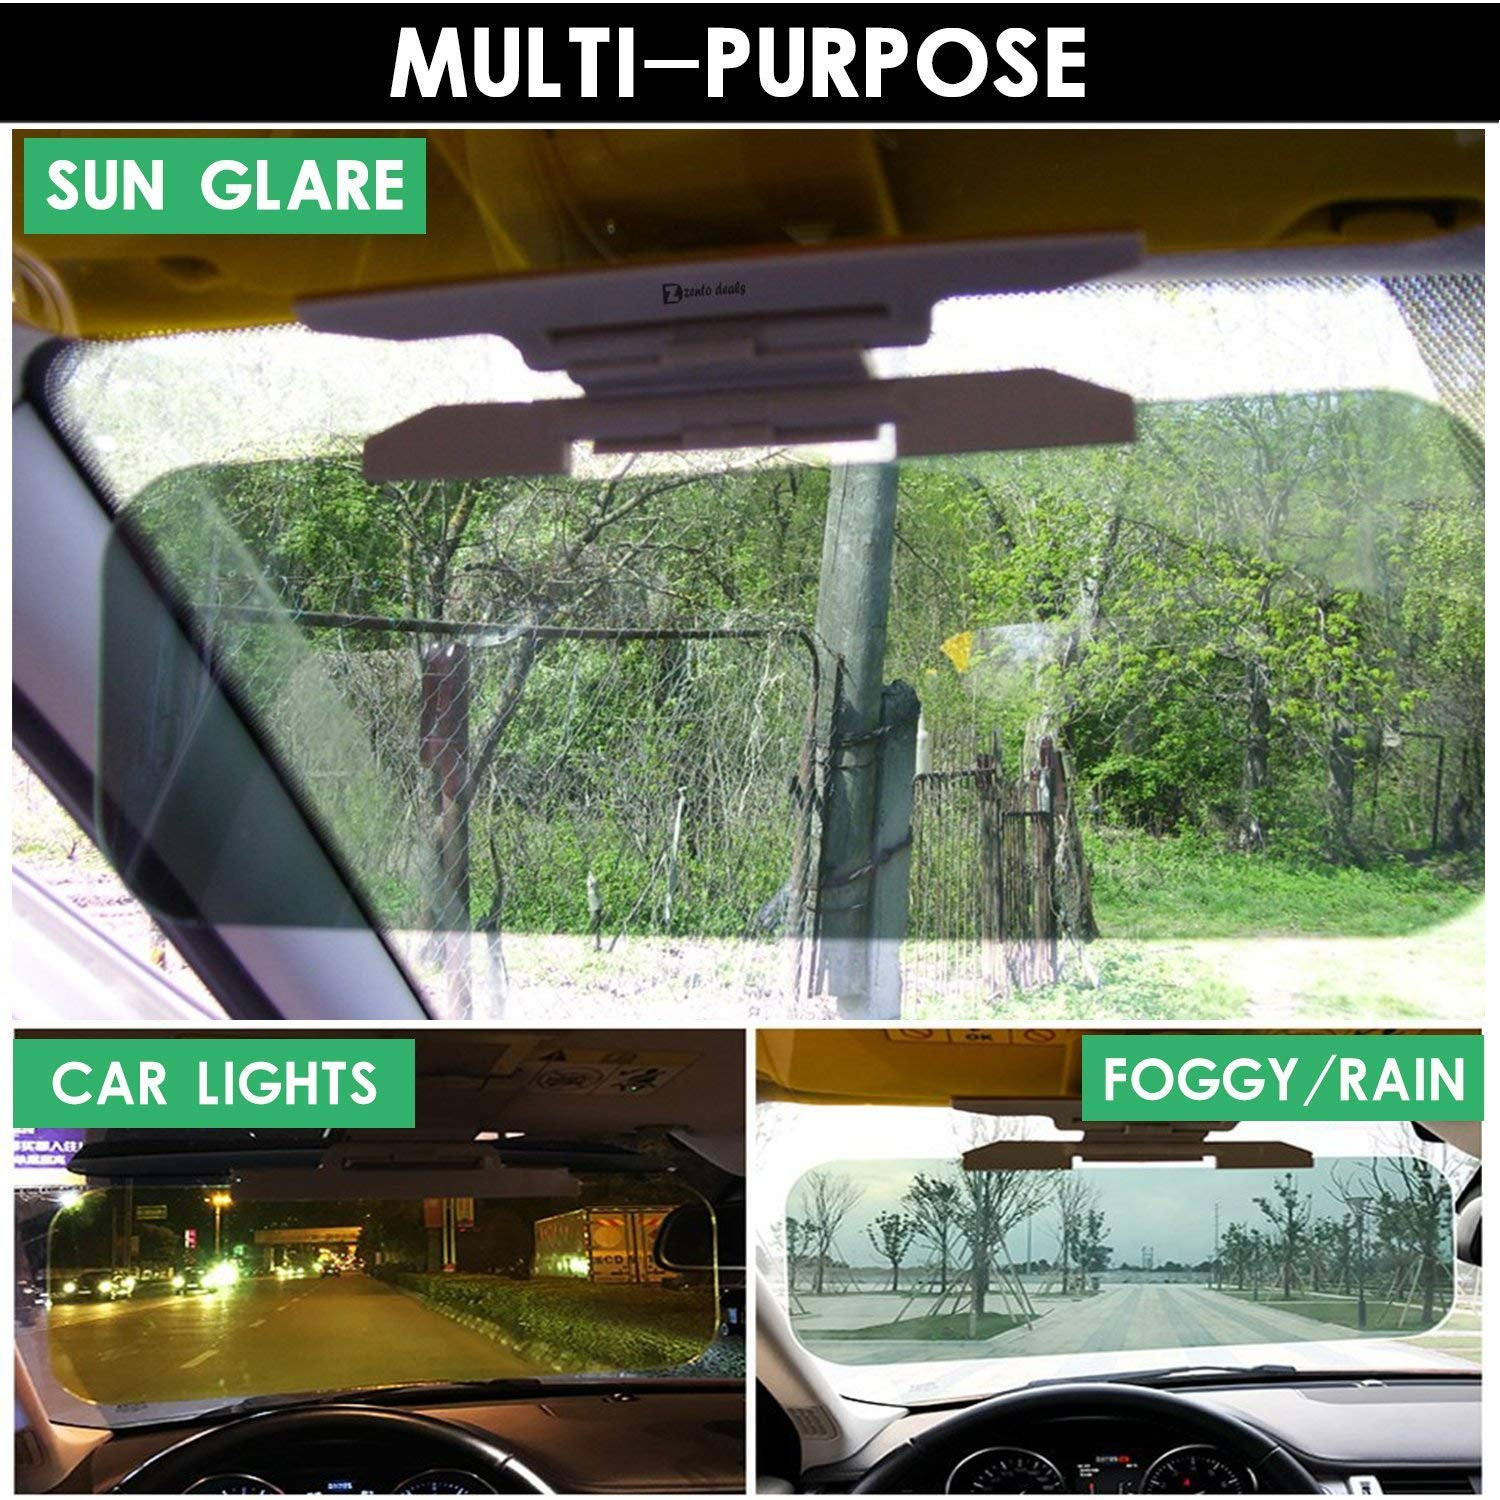 ALIKE Car Sun Visor Anti Glare UV Car Visor 2 in 1 Universal HD Day and Night Car Visor Extender Windshield Driving Visor